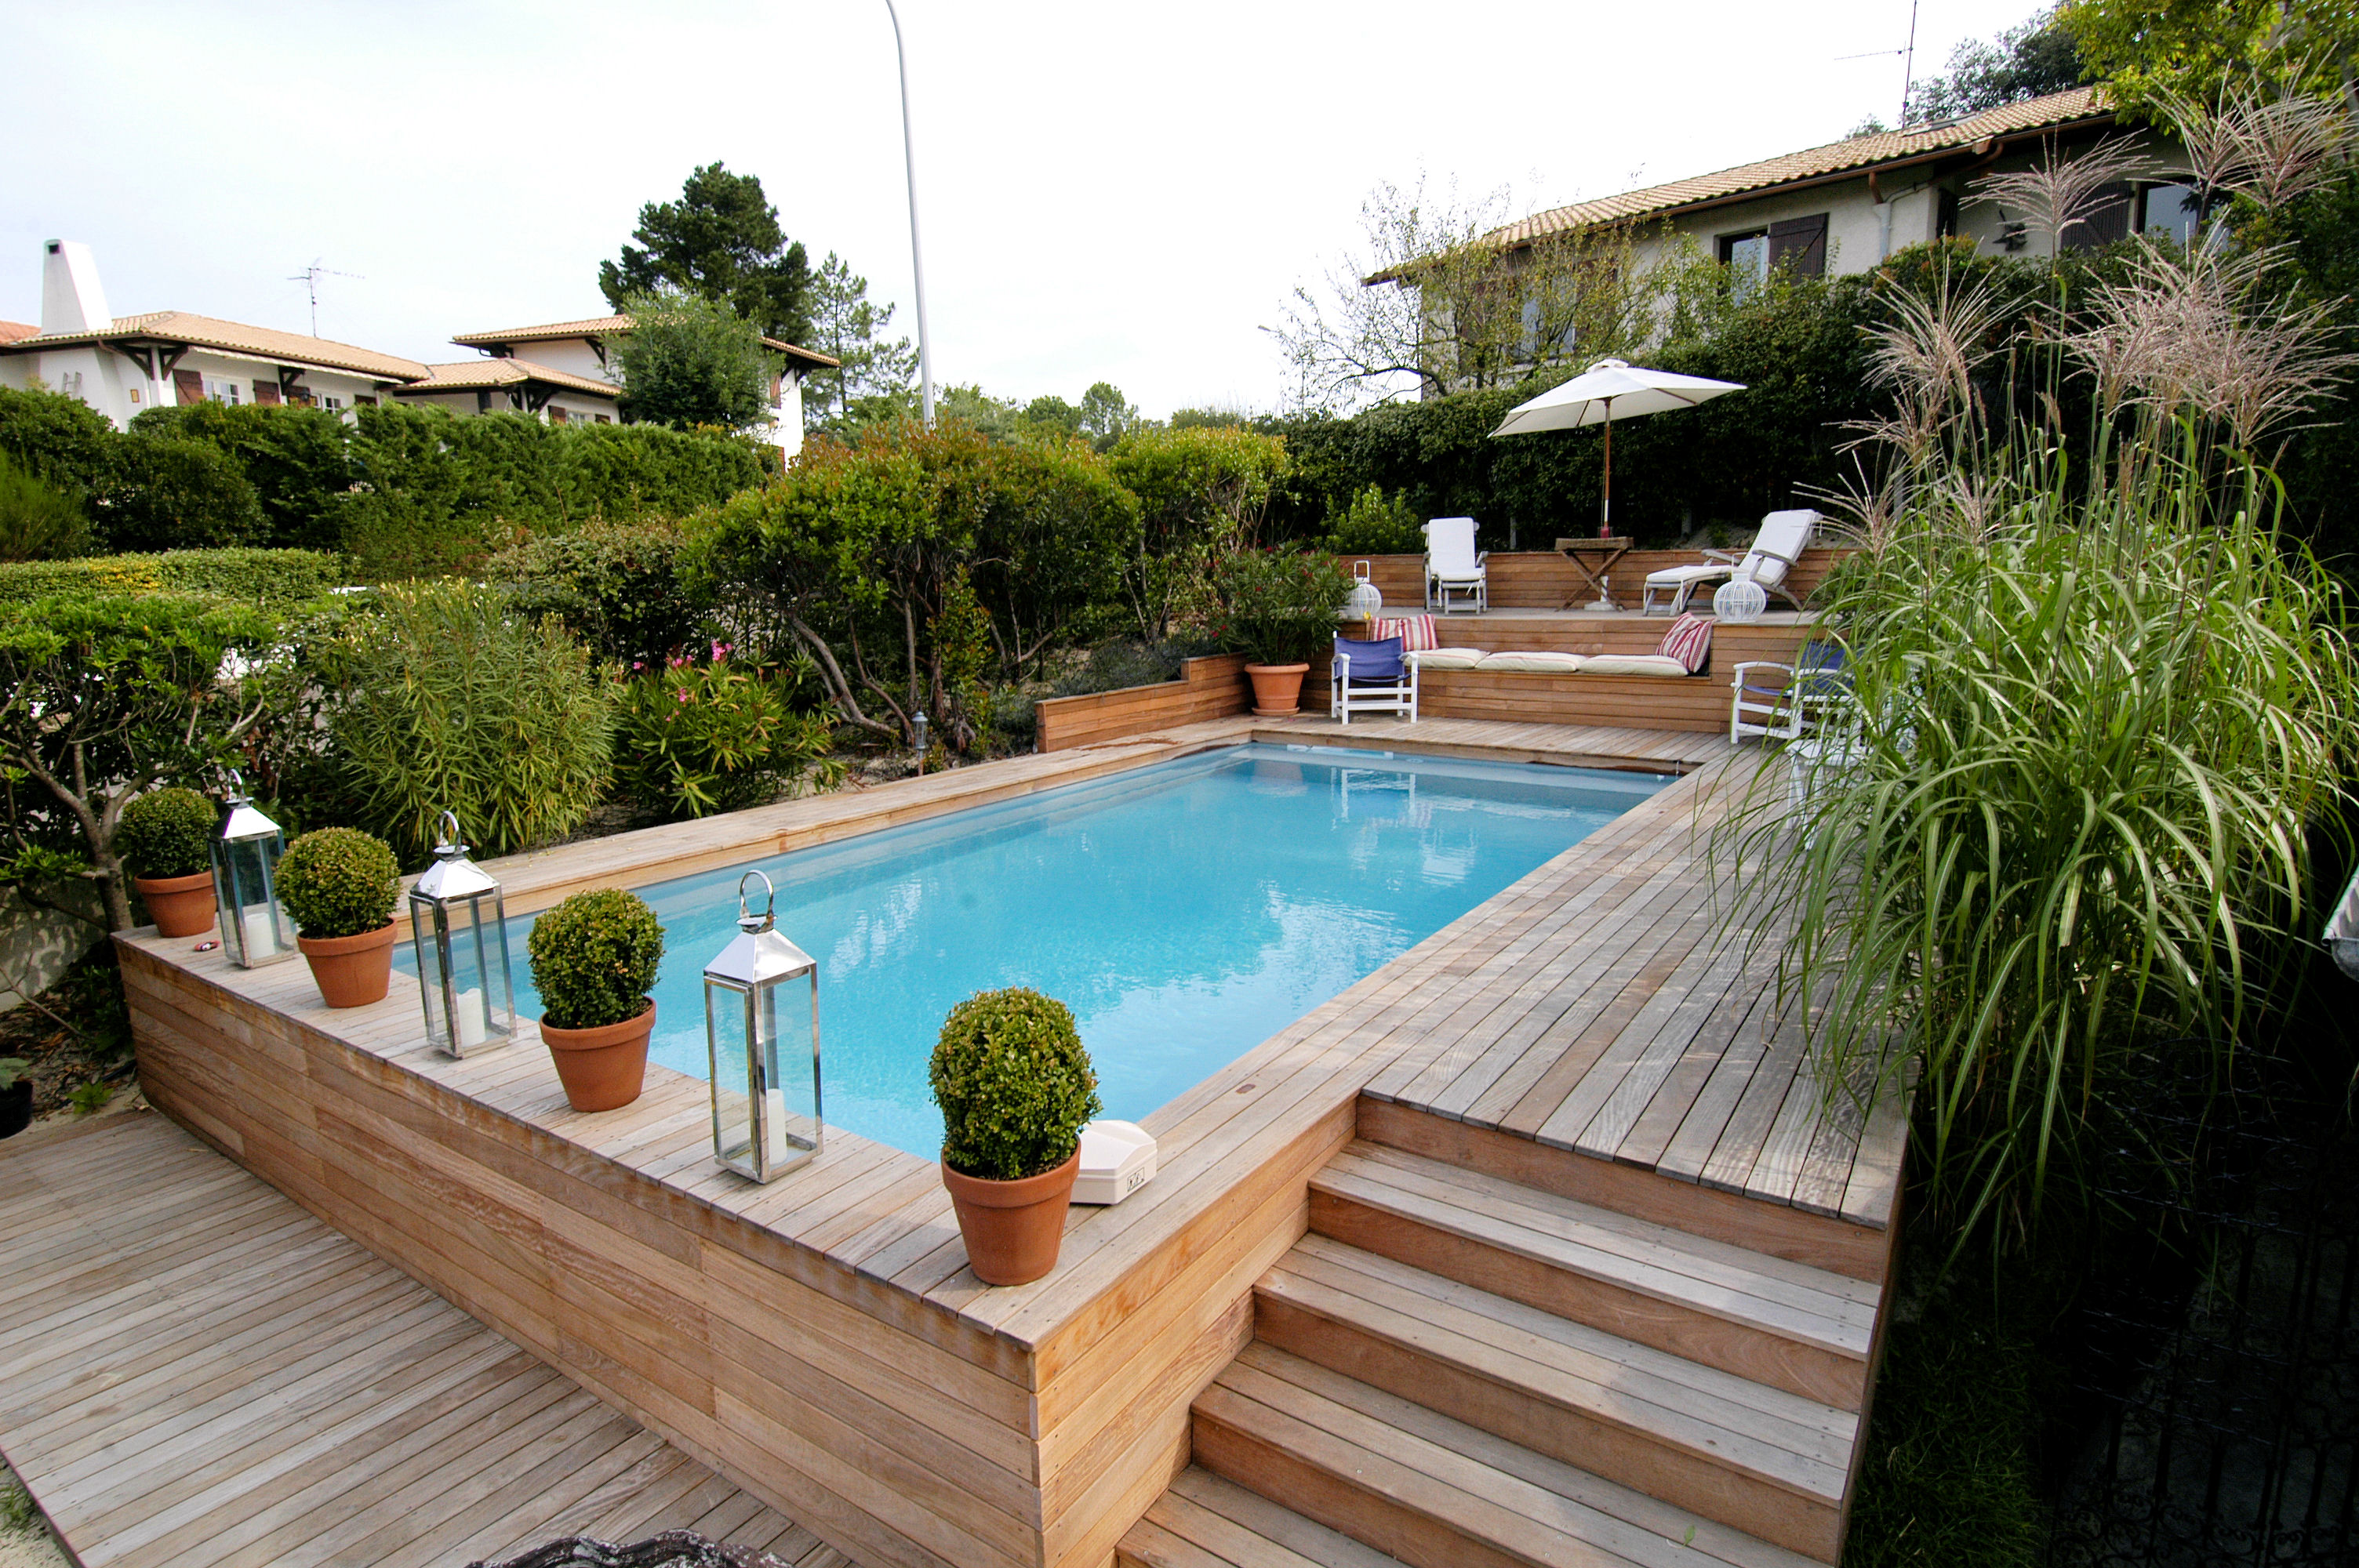 Piscine semi enterree bois - Piscine enterree tarif ...